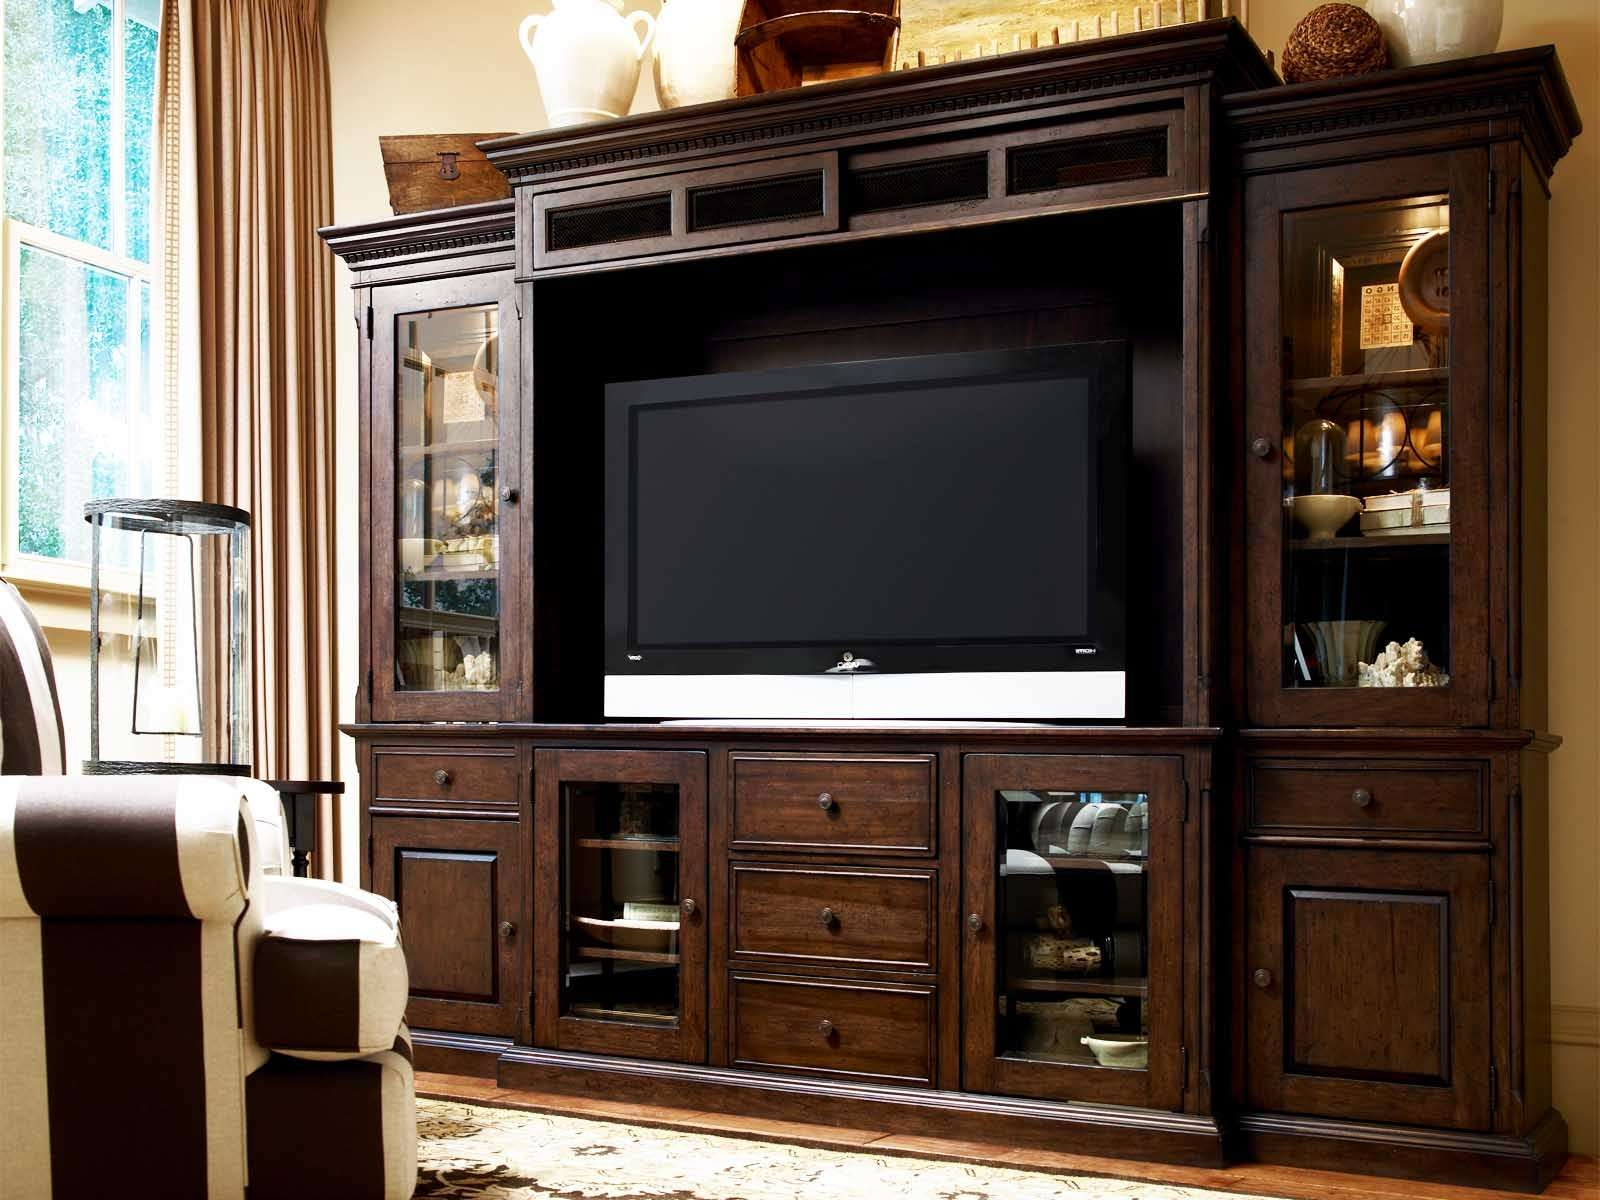 Wood Tv Stand With Glass Doors Images – Doors Design Ideas With Regard To Wooden Tv Stands With Glass Doors (View 2 of 15)